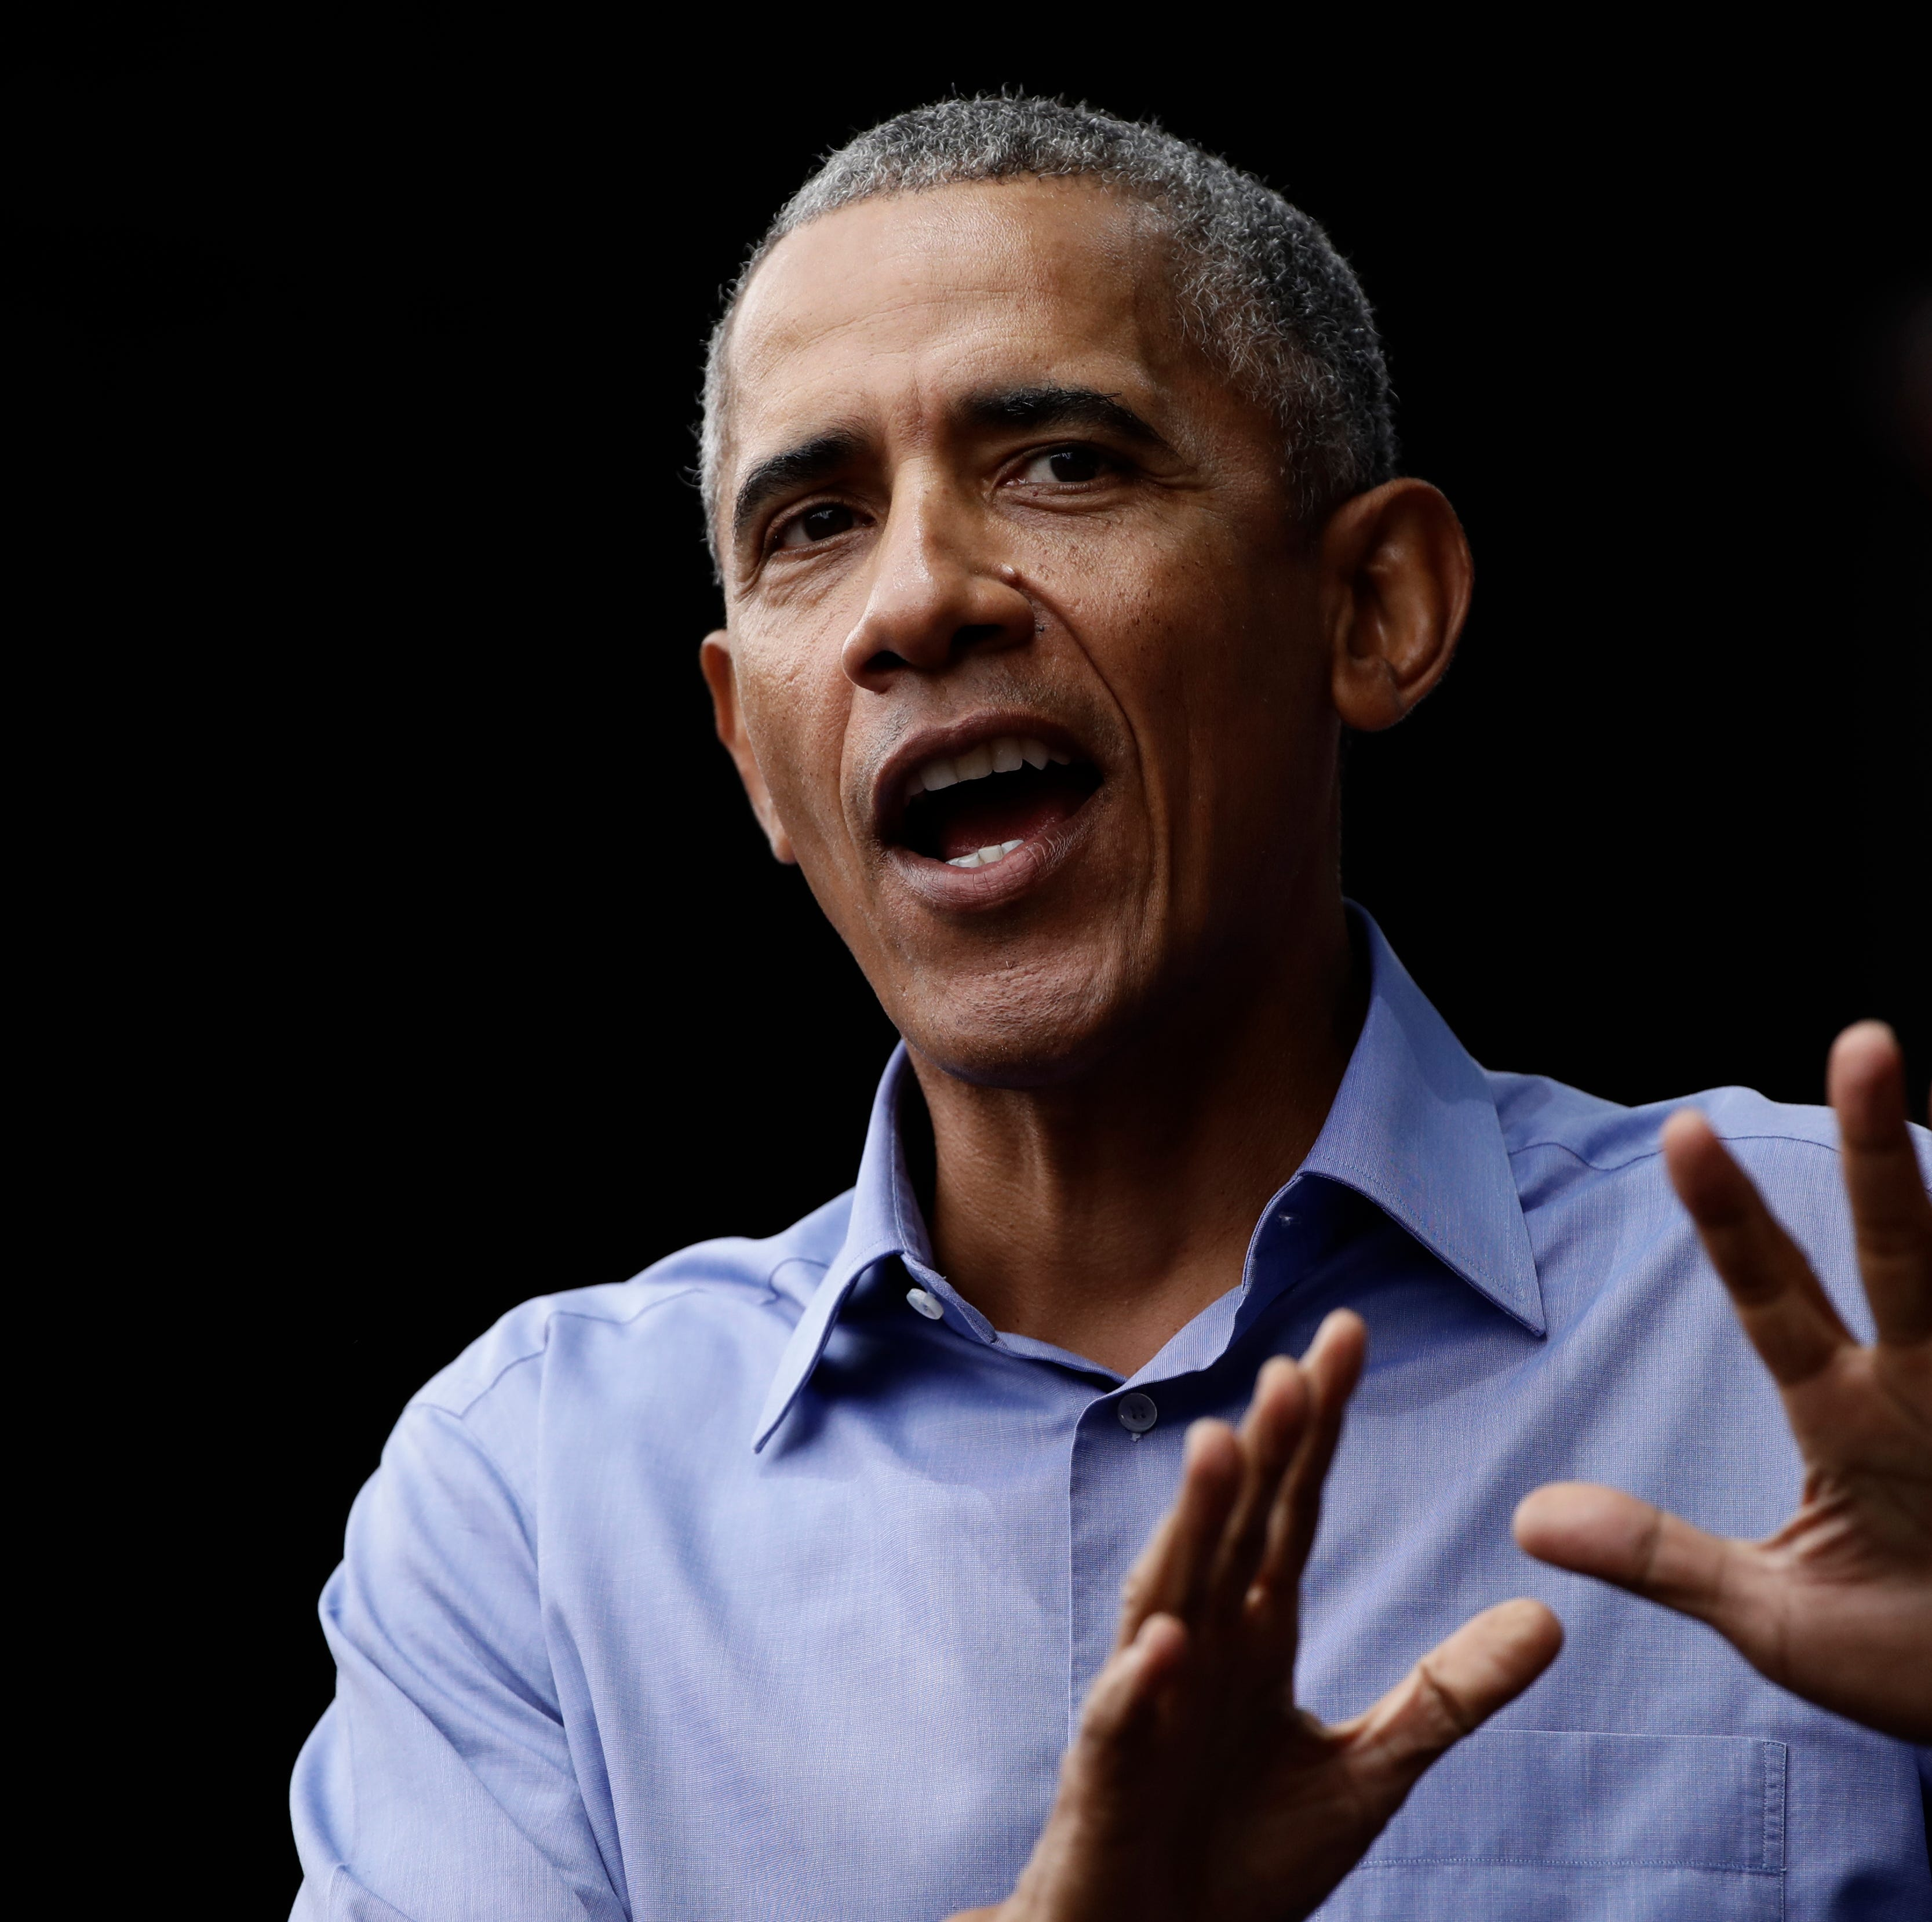 Barack Obama is coming to Milwaukee to campaign for Tammy Baldwin, Tony Evers